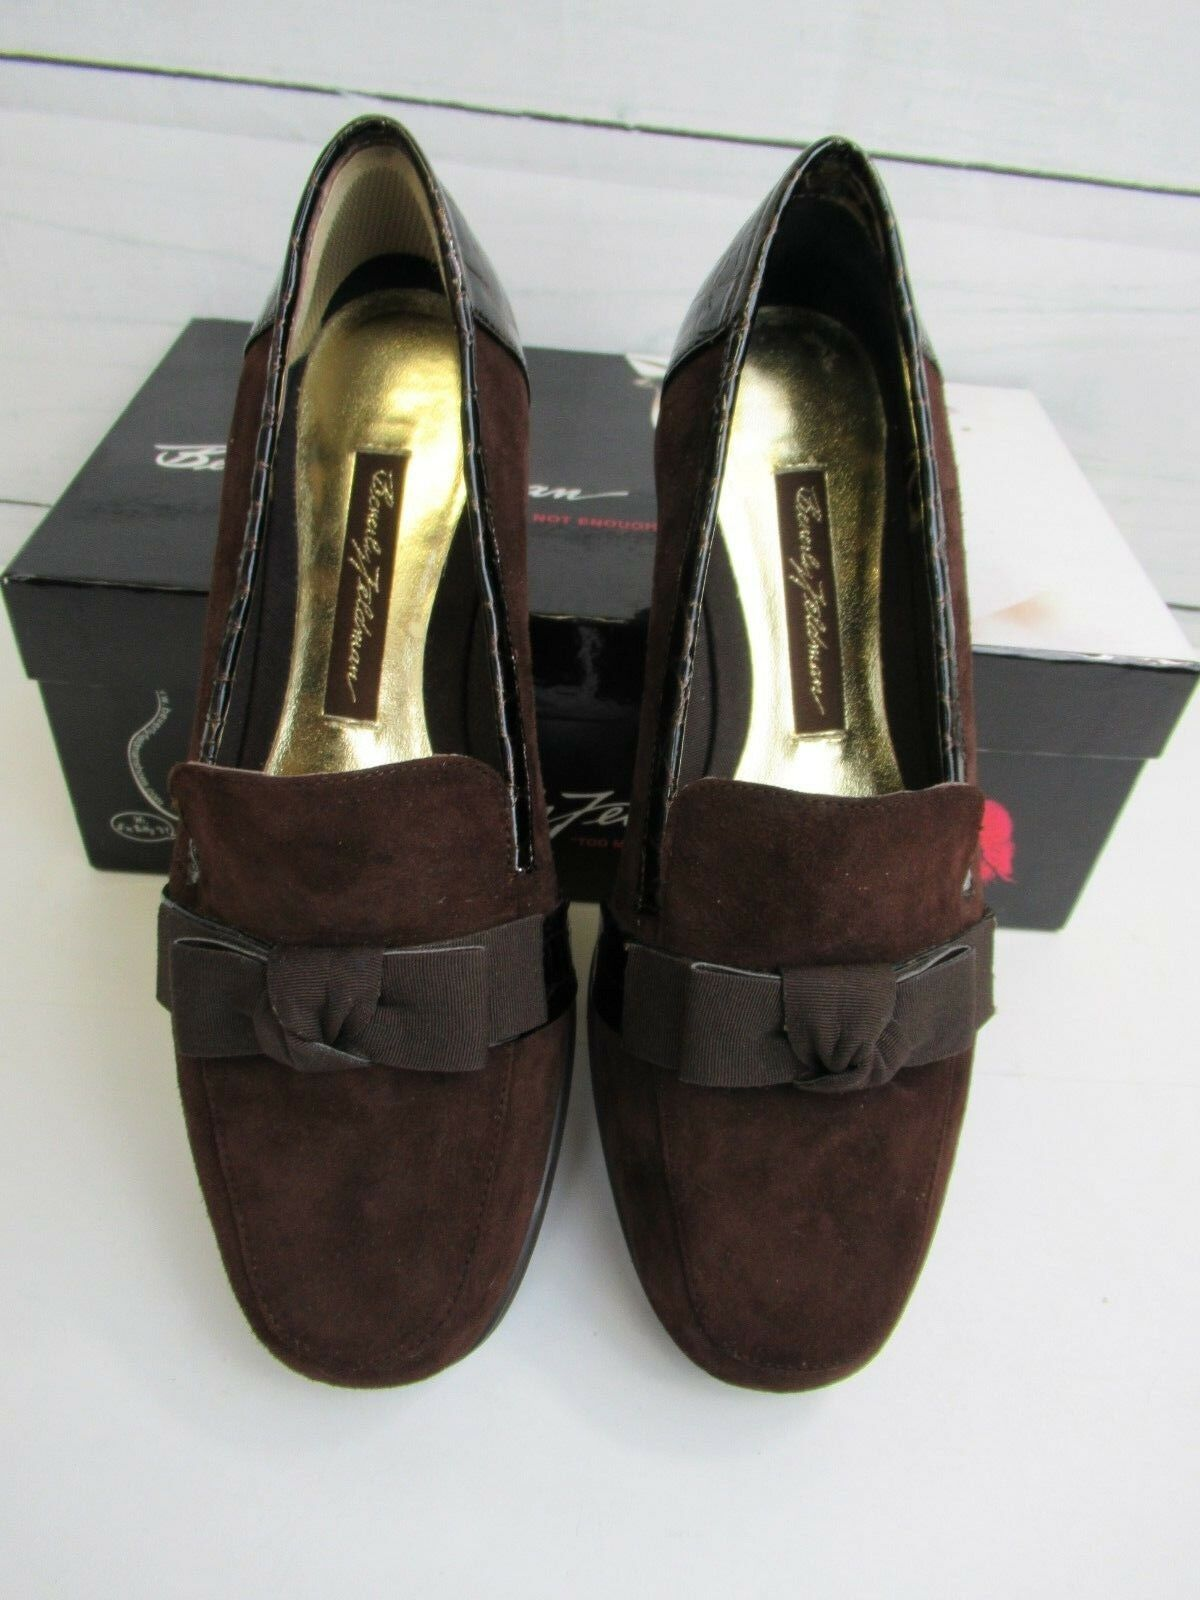 Adore by Beverly Feldman Feldman Feldman Womens 6.5M Brown Suede Loafer with Bow  142.00 - SS613 48ea37